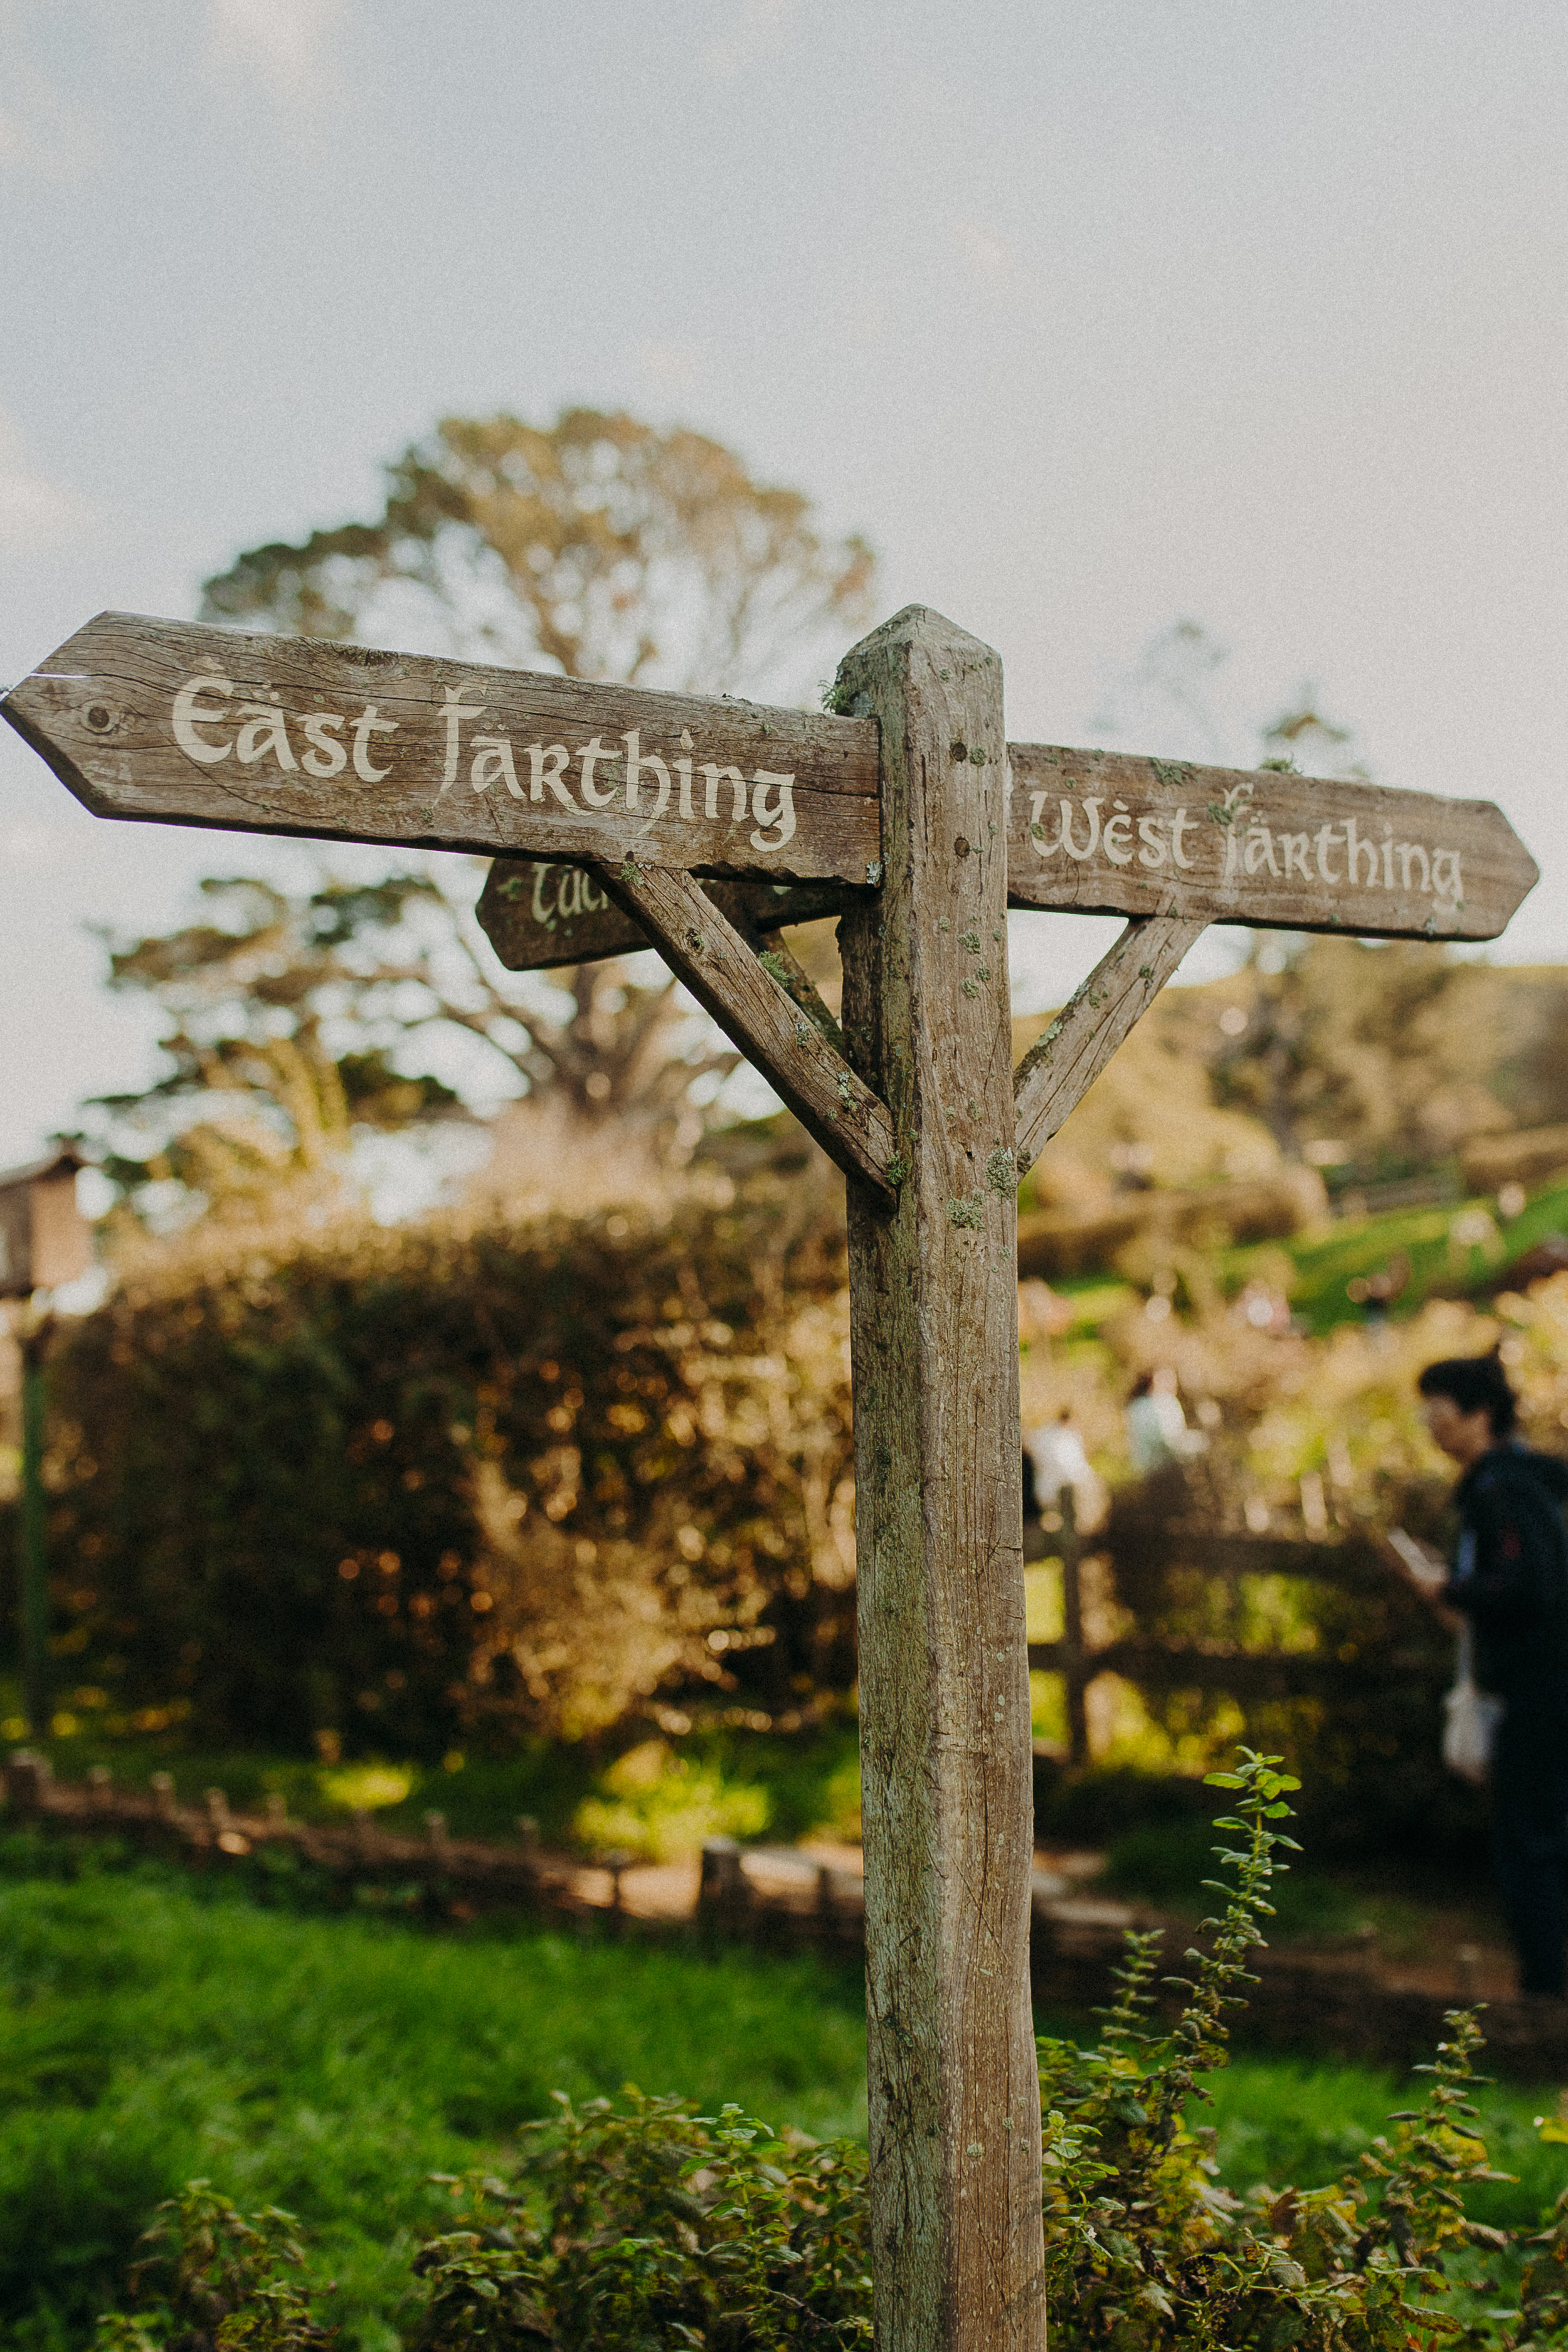 hobbiton-new-zealand-lord-of-the-rings-tour-3.jpg